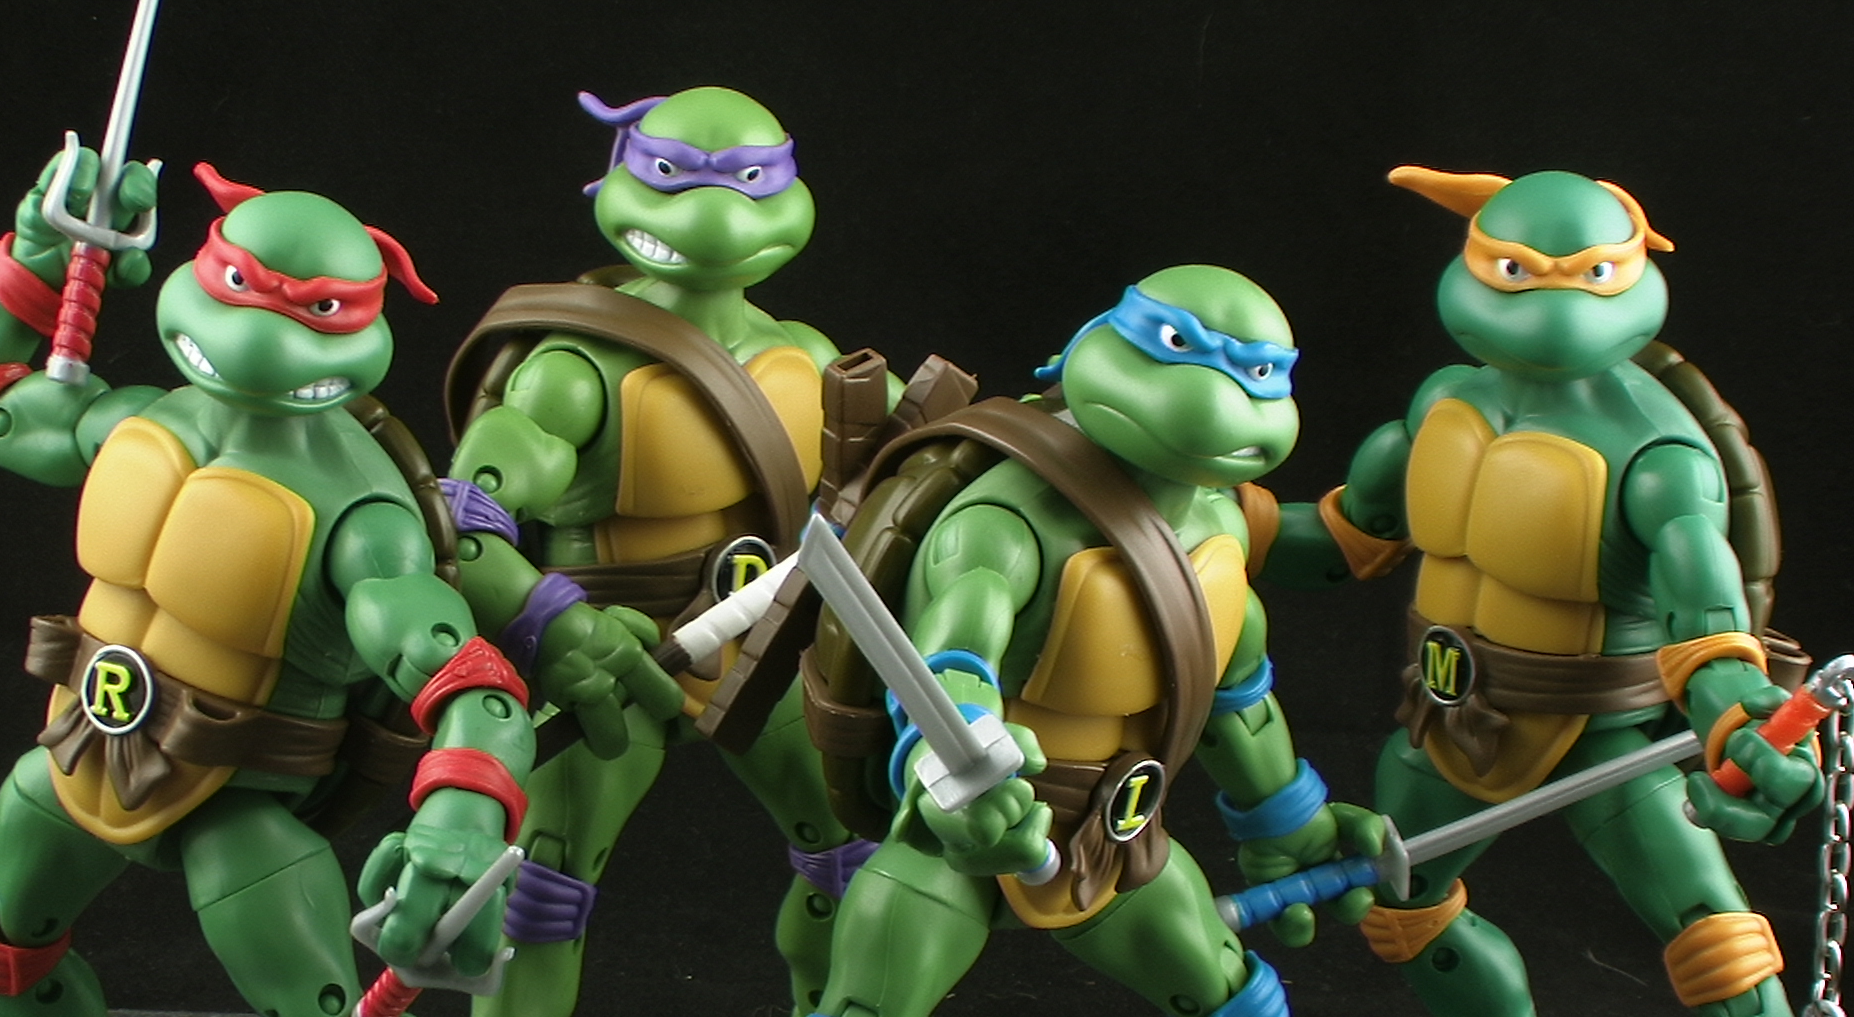 12 Facts About The Teenage Mutant Ninja Turtles You - Teenage Mutant Ninja Turtles Classic Figures - HD Wallpaper